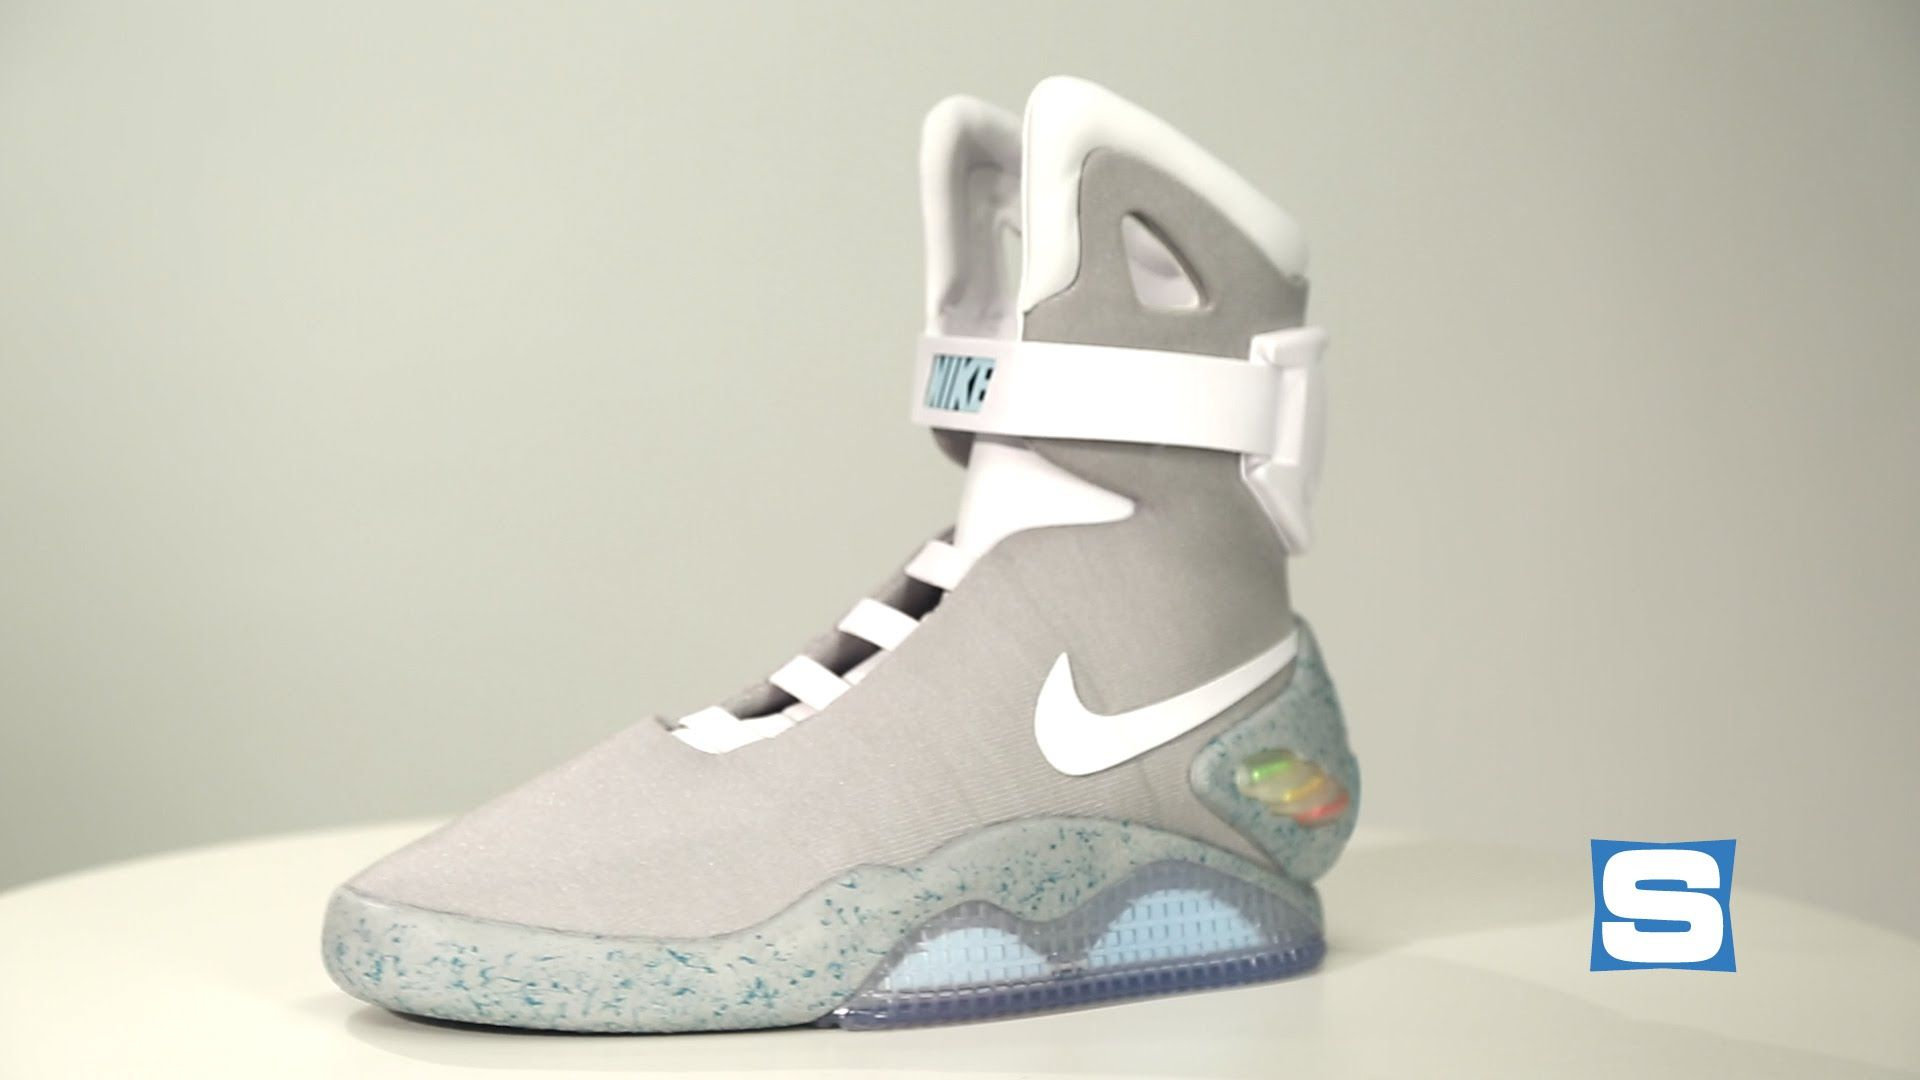 Nike Air Mag Back To The Future Shoes Comparison With Images